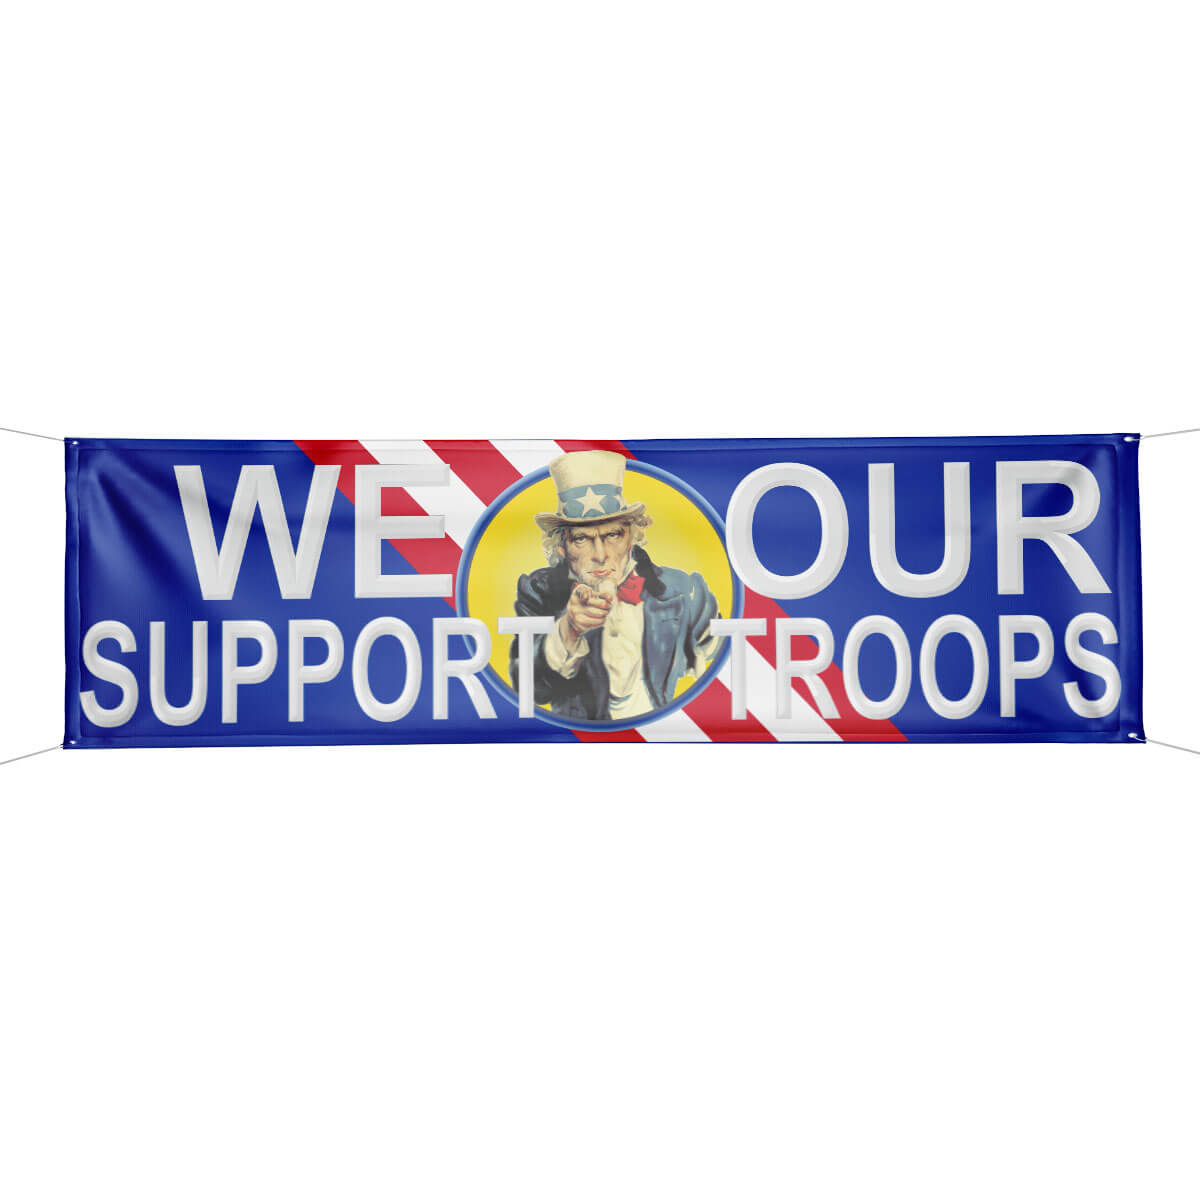 Vinyl We Support Our Troops PatrioticBanner, FBPP0000012854